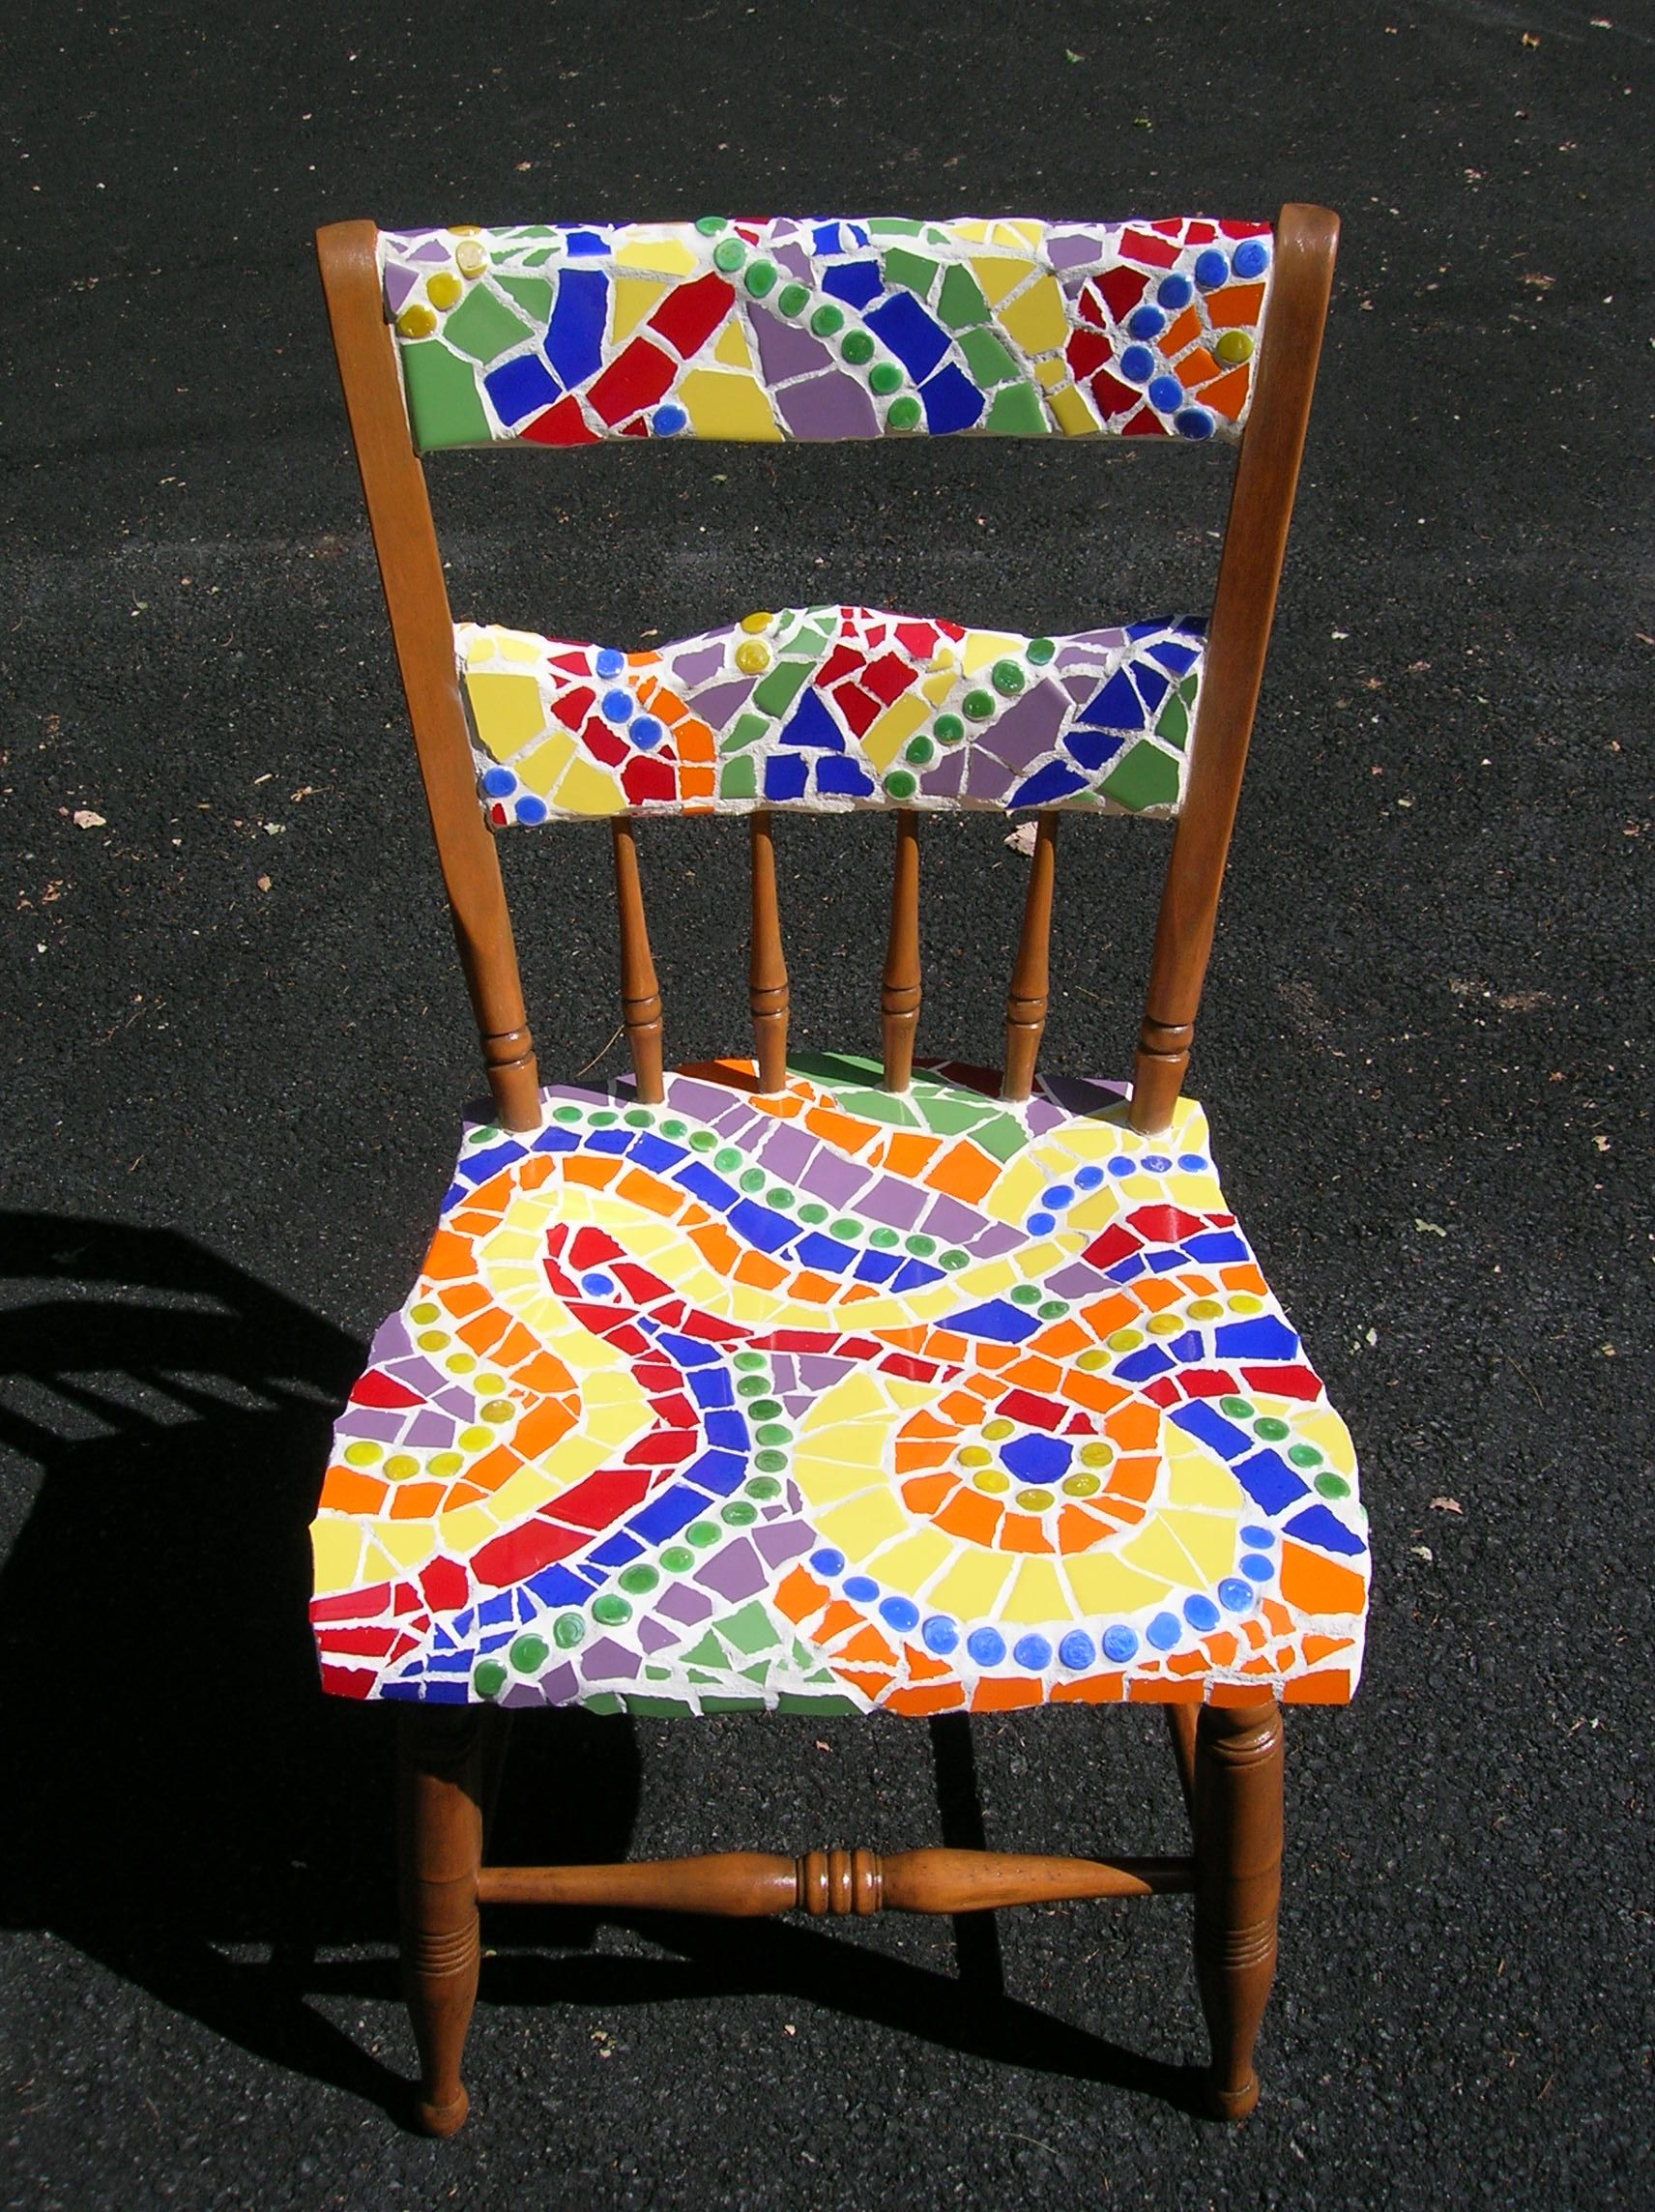 Colorful Wooden Chairs Mosaic Chair Primary And Secondary Colors Better If The